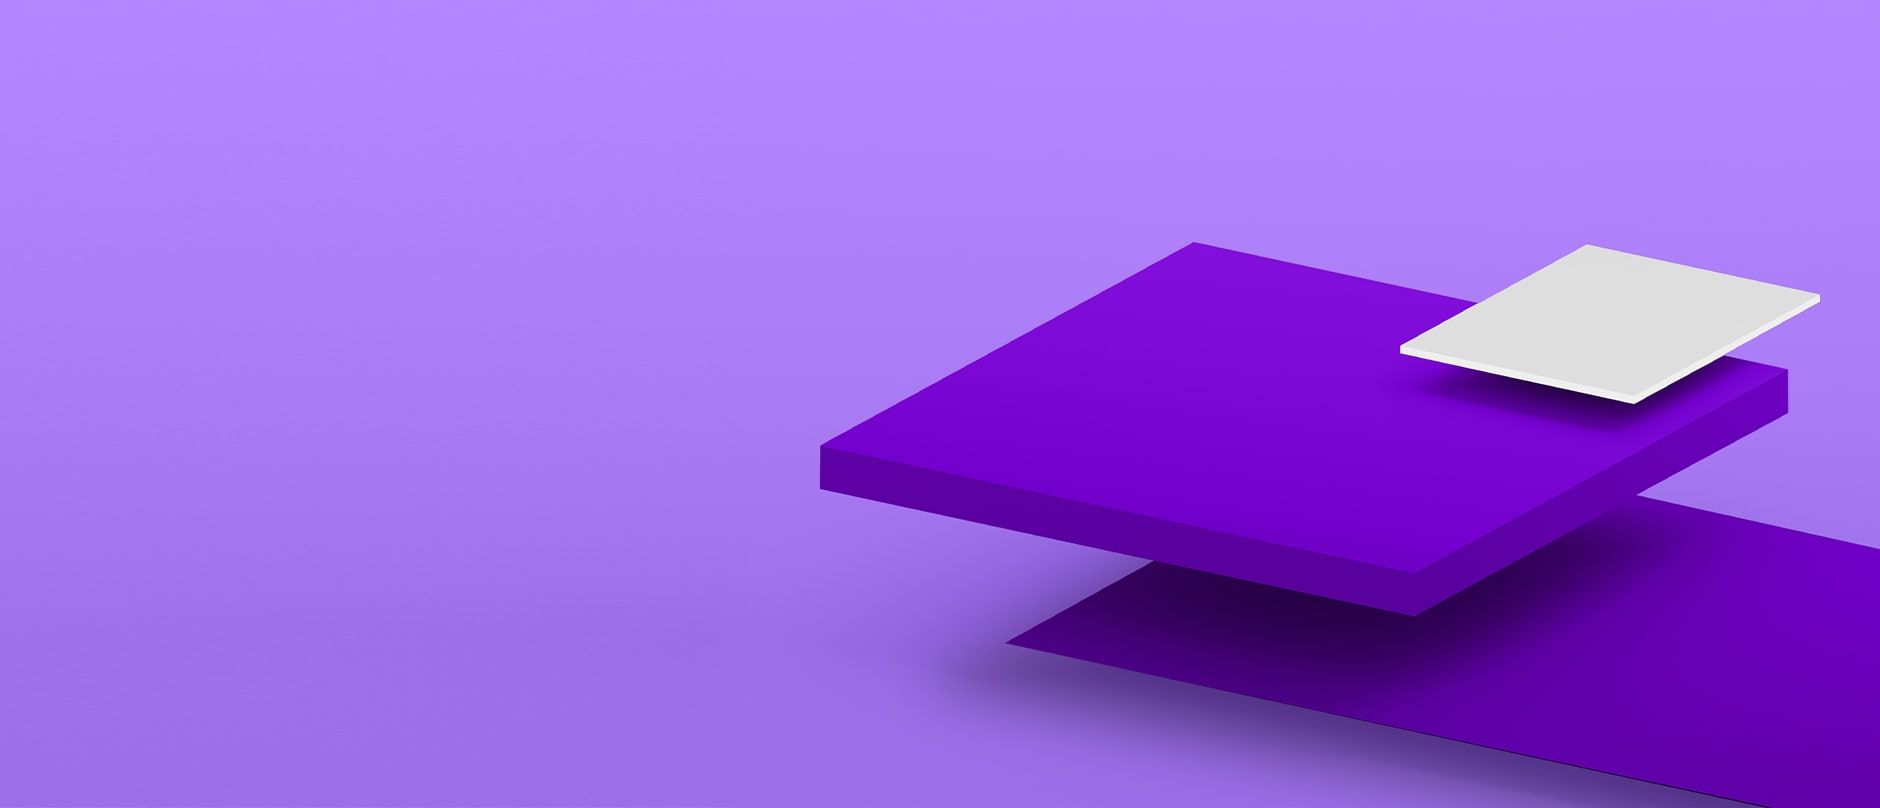 Purple square floating with a white square above it, on a purple background